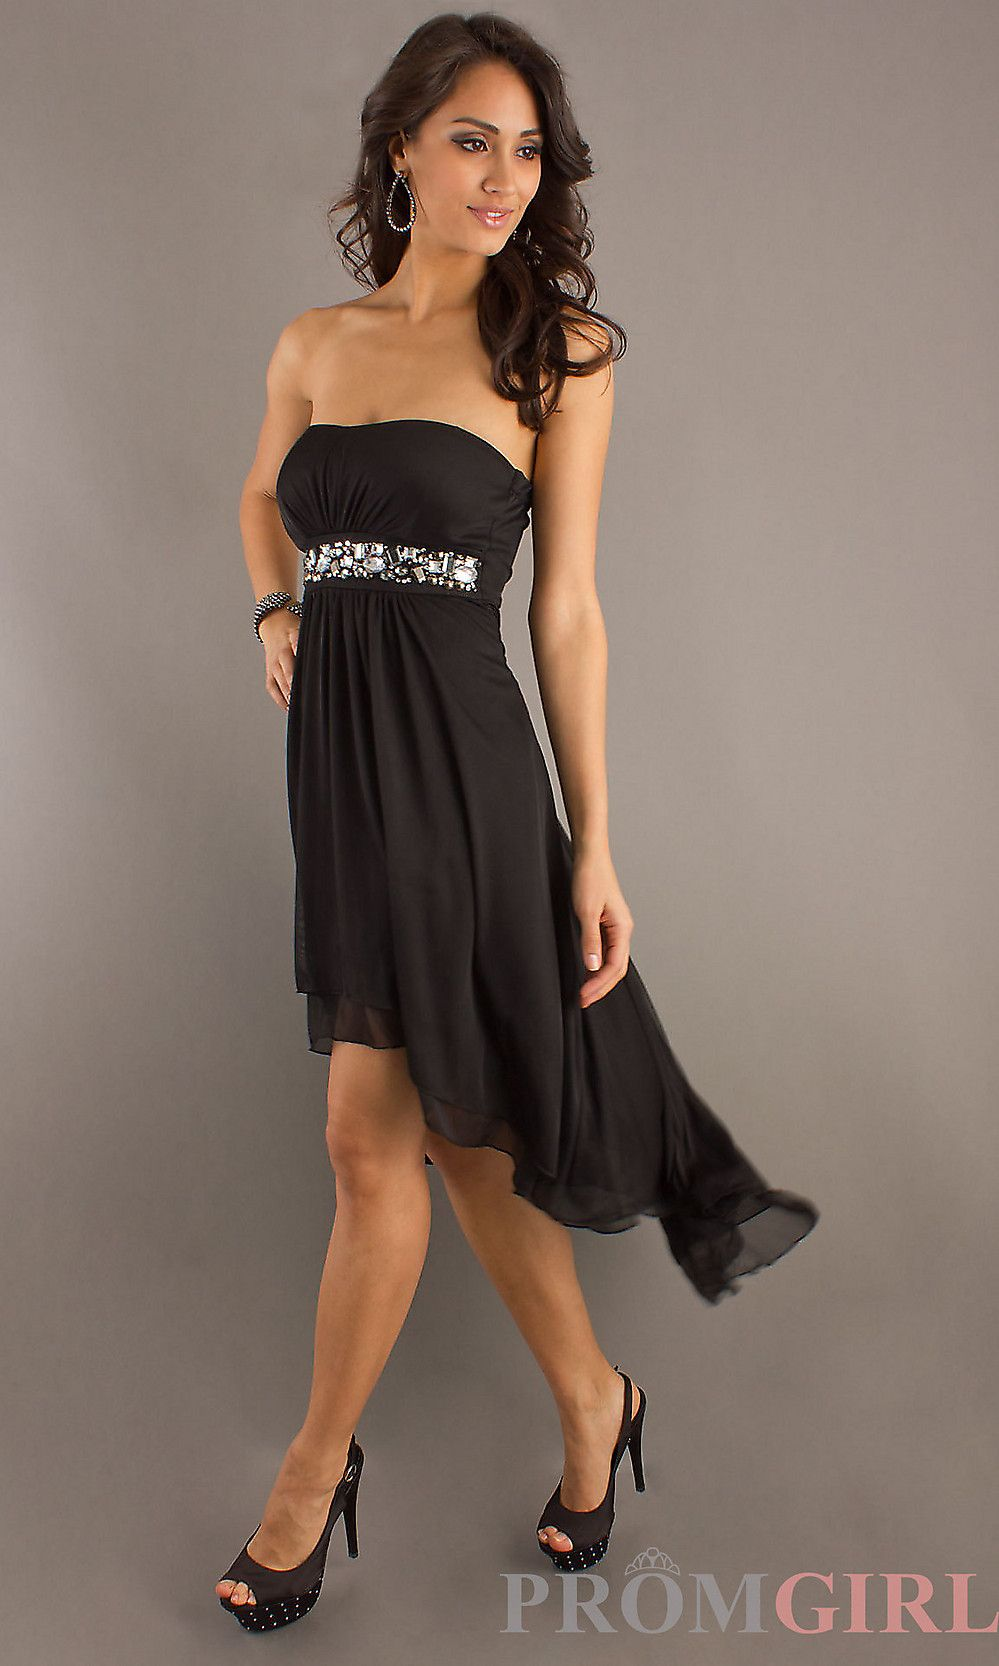 Collection Strapless Black Party Dress Pictures - Reikian